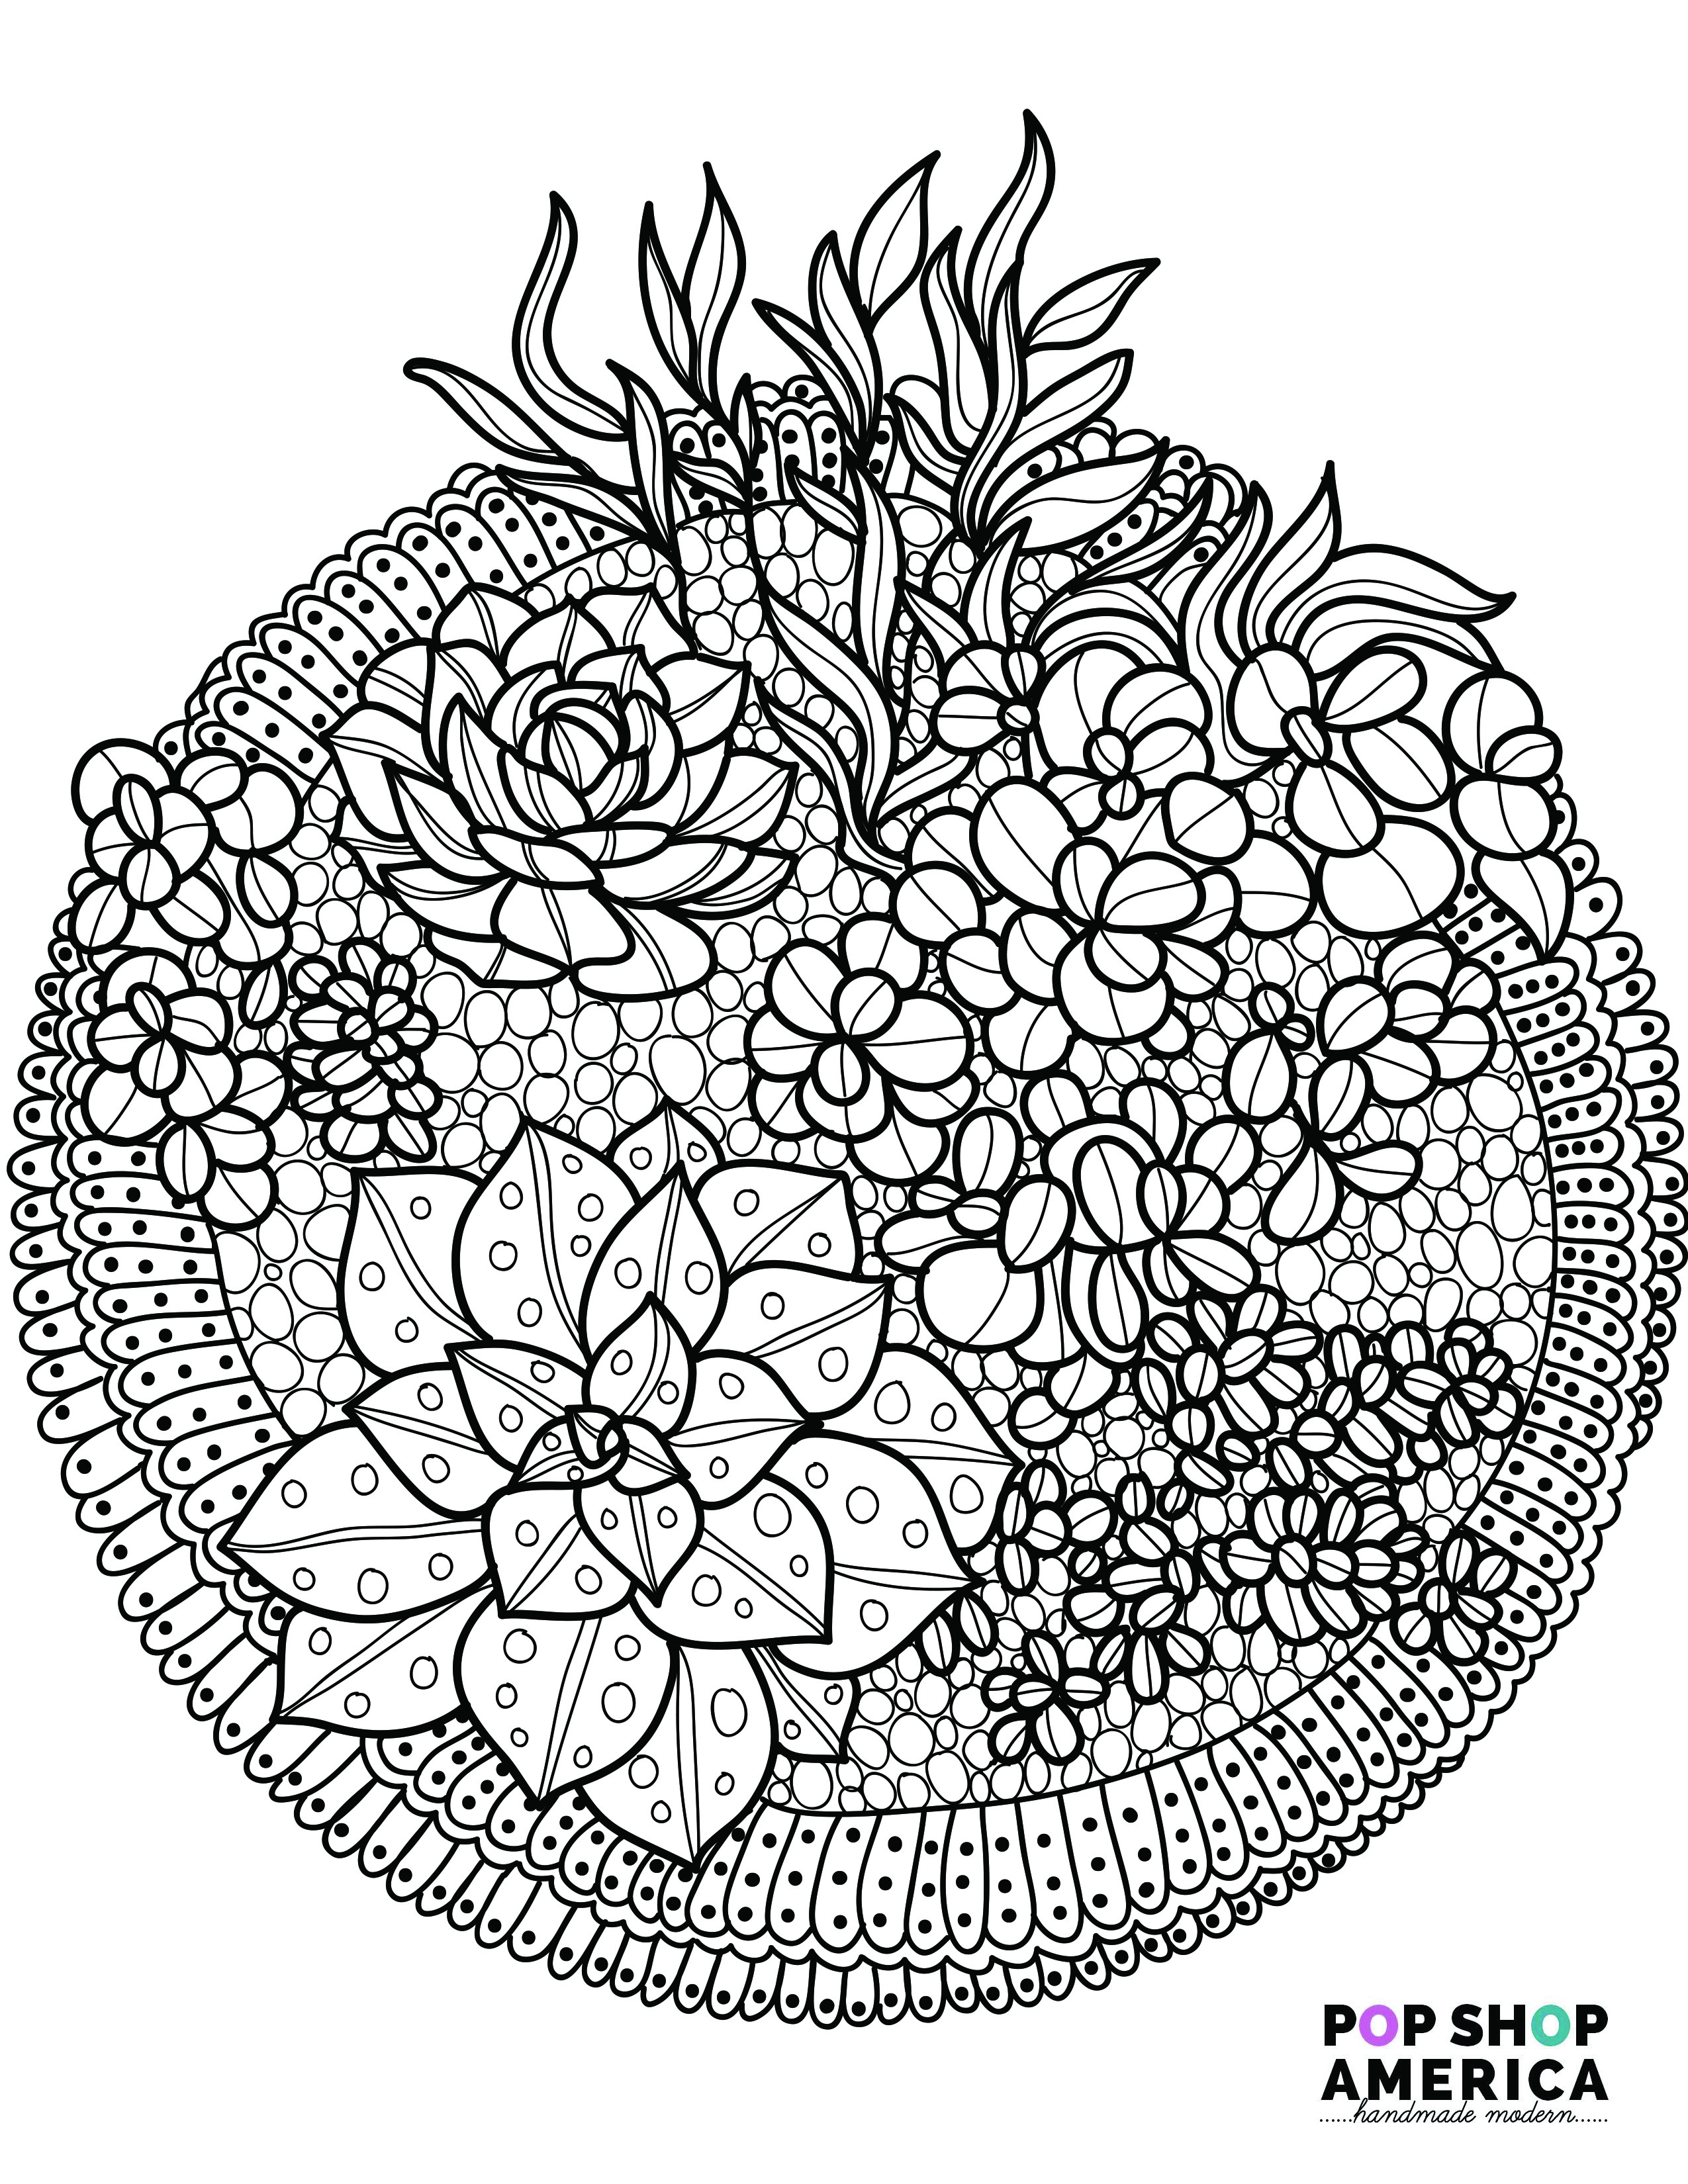 Best ideas about Adult Coloring Books . Save or Pin Free Adult Coloring Book Pages with Succulent Terrariums Now.